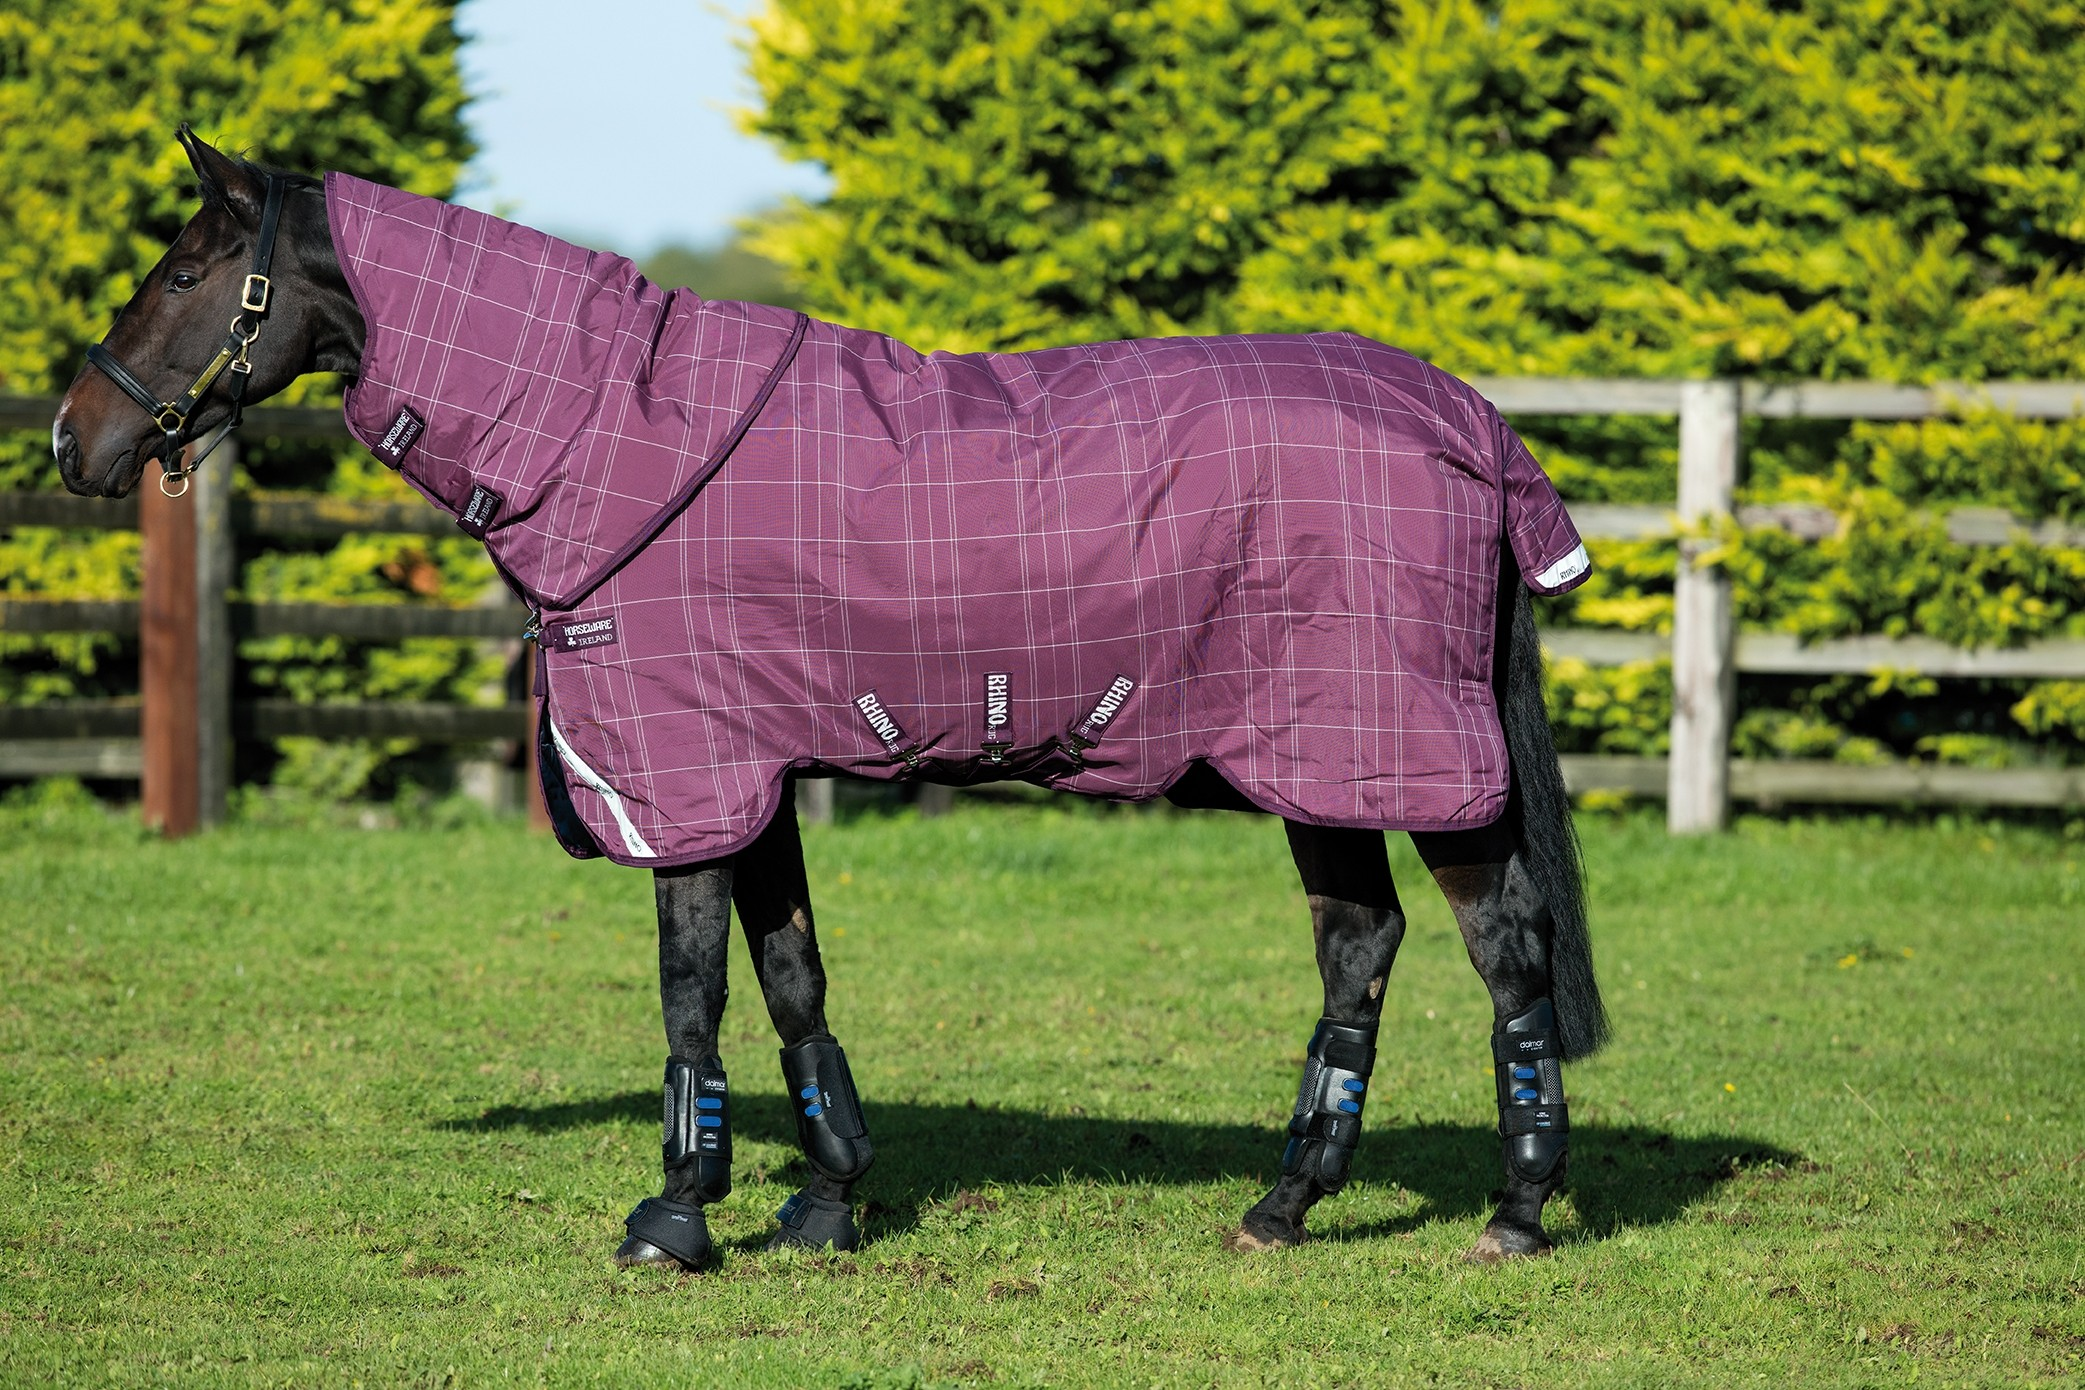 Horseware Rhino Plus with Vari-Layer 250g Turnout Rug  - Thomas Irving's equestrian and accessories store  Horseware Rhino Plus with Vari-Layer 250g Turnout Rug